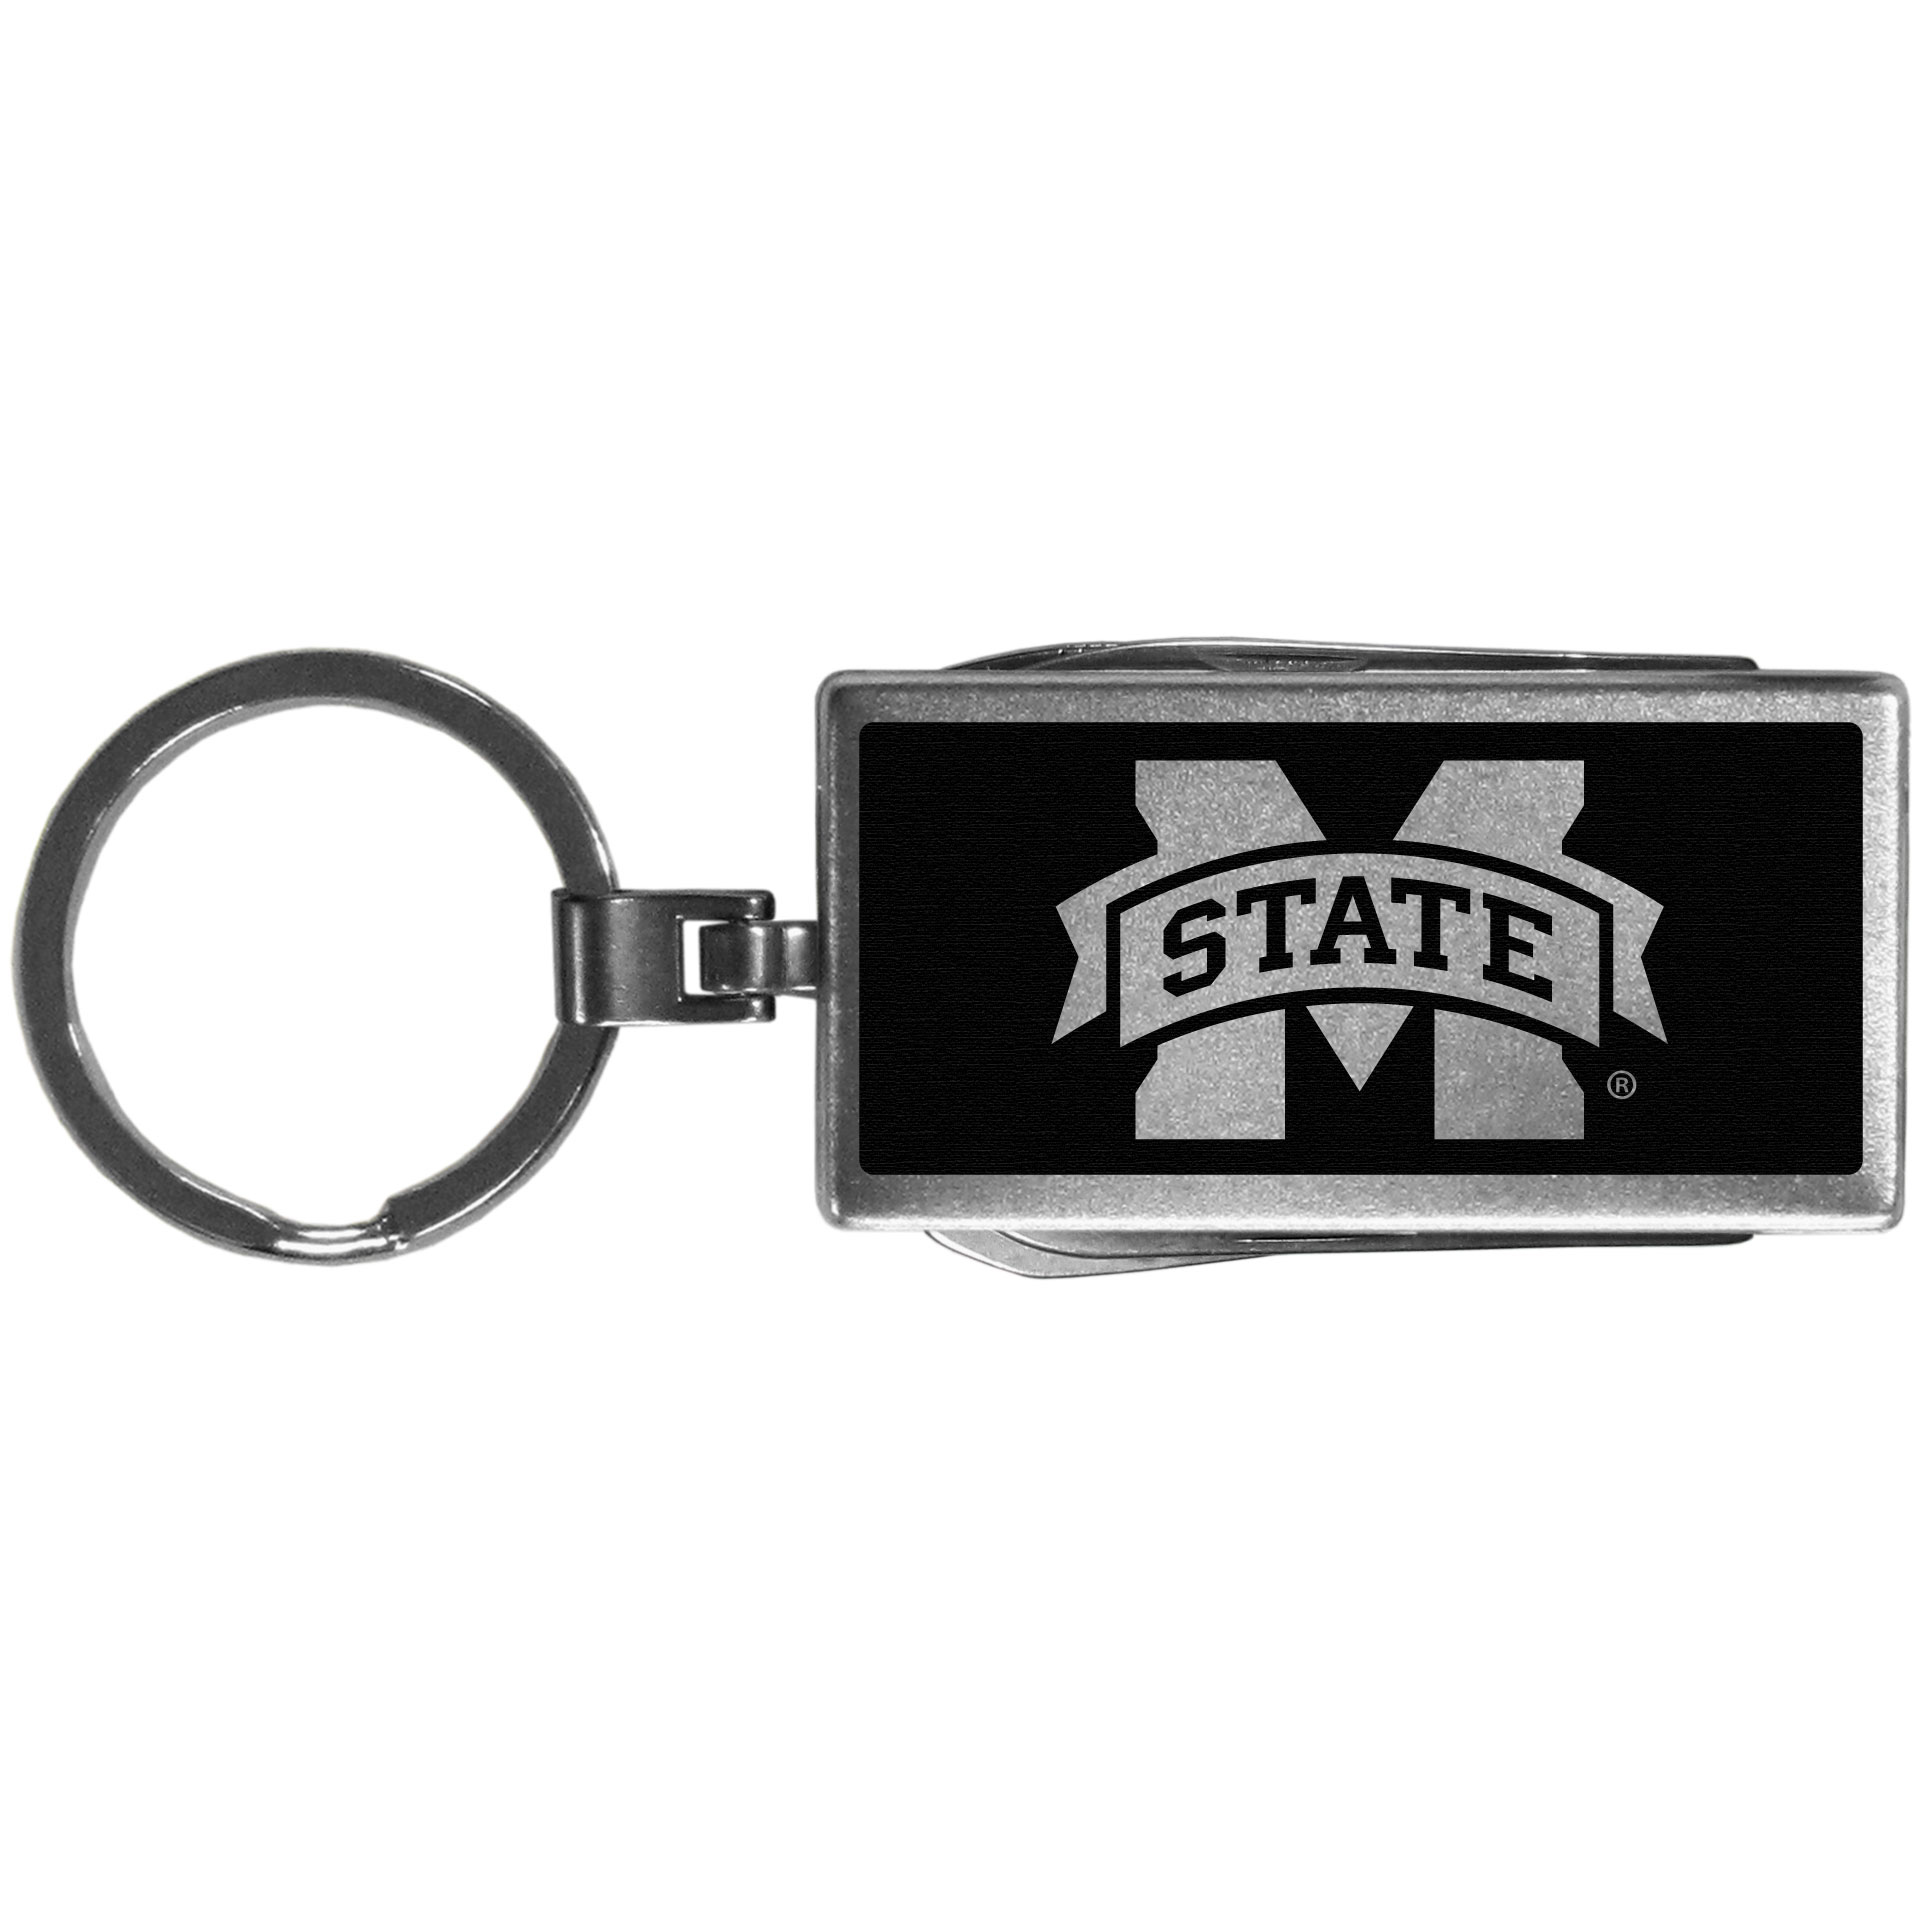 Mississippi St. Bulldogs Multi-tool Key Chain, Black - Be the hero at the tailgate, camping, or on a Friday night with your Mississippi St. Bulldogs Multi-Tool Keychain which comes complete with bottle opener, scissors, knife, nail file and screw driver. Be it opening a package or a beverage Siskiyou's Multi-Tool Keychain goes wherever your keys do. The keychain hangs at 4 inches long when closed.